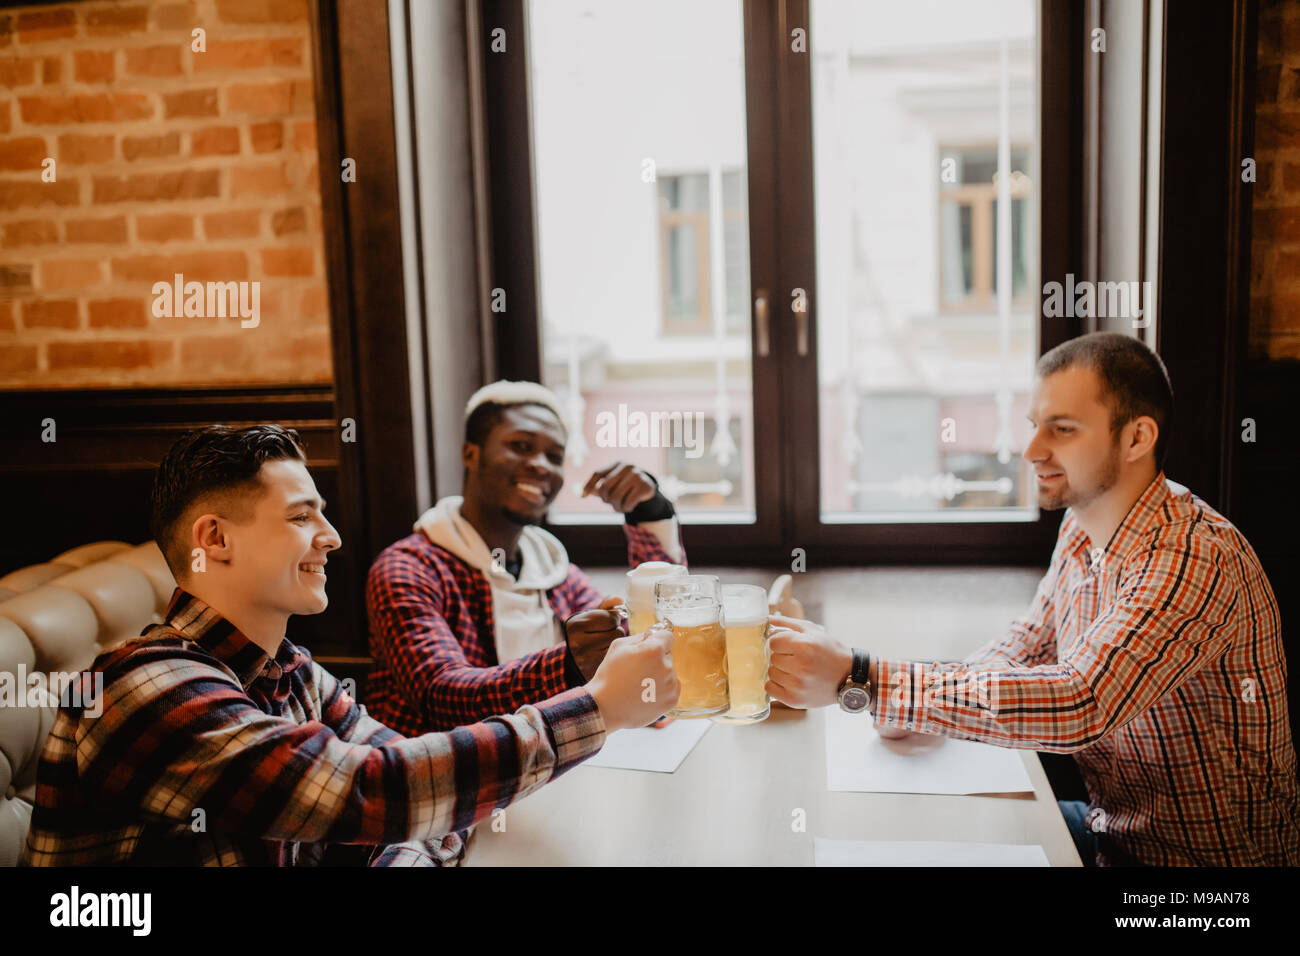 Handsome guys are clinking bottles of beer, looking at camera and smiling while resting in pub - Stock Image